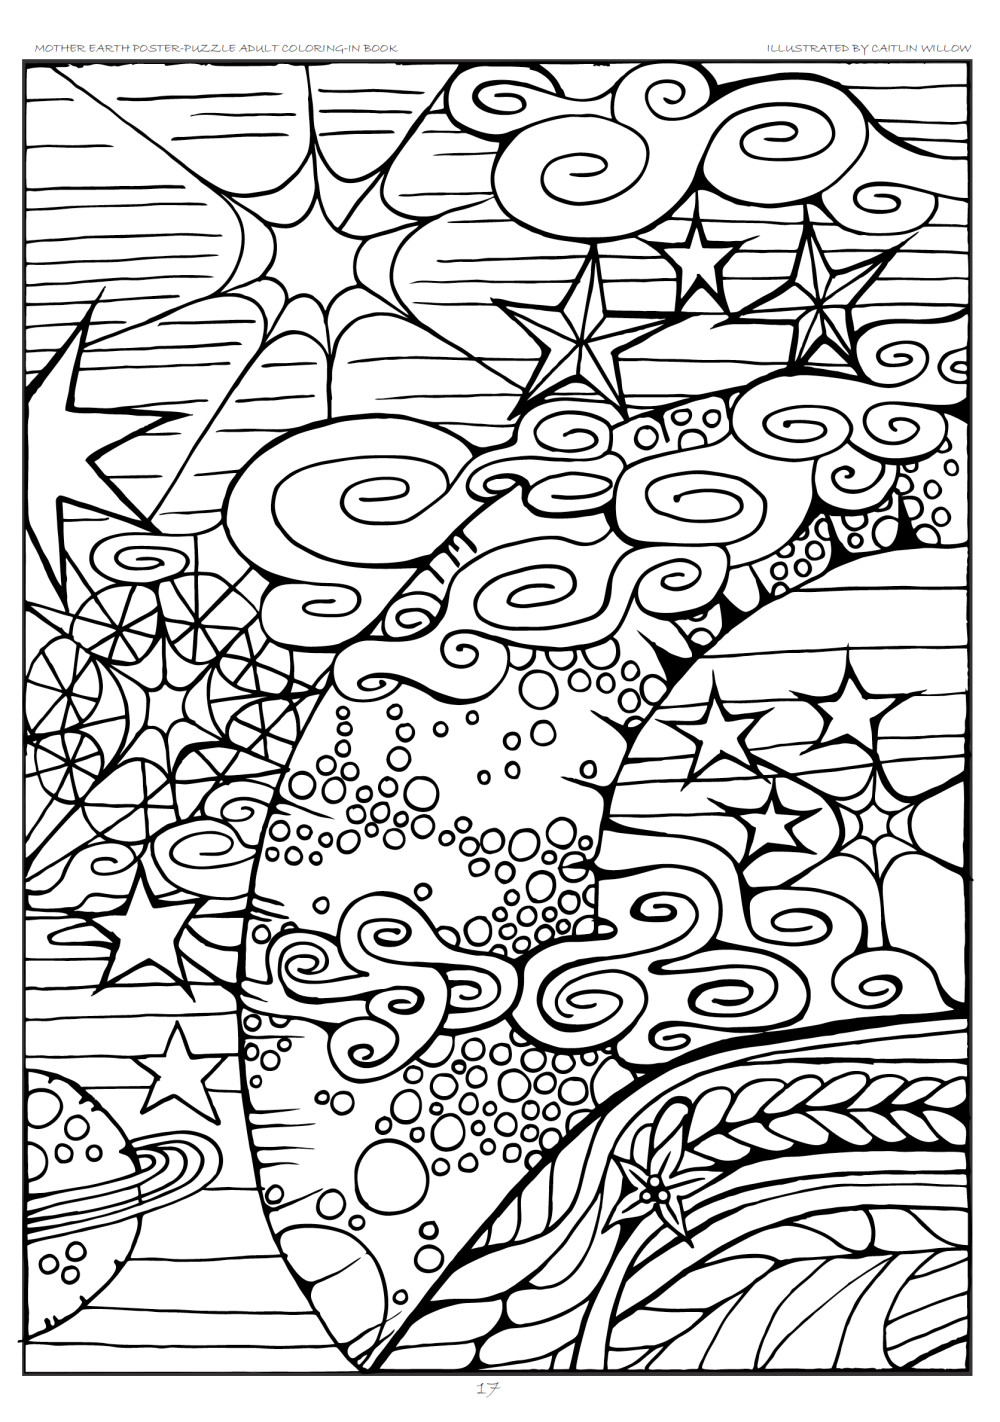 1000x1422 Mother Earth Coloring Pages Poster Puzzle Adult In Book